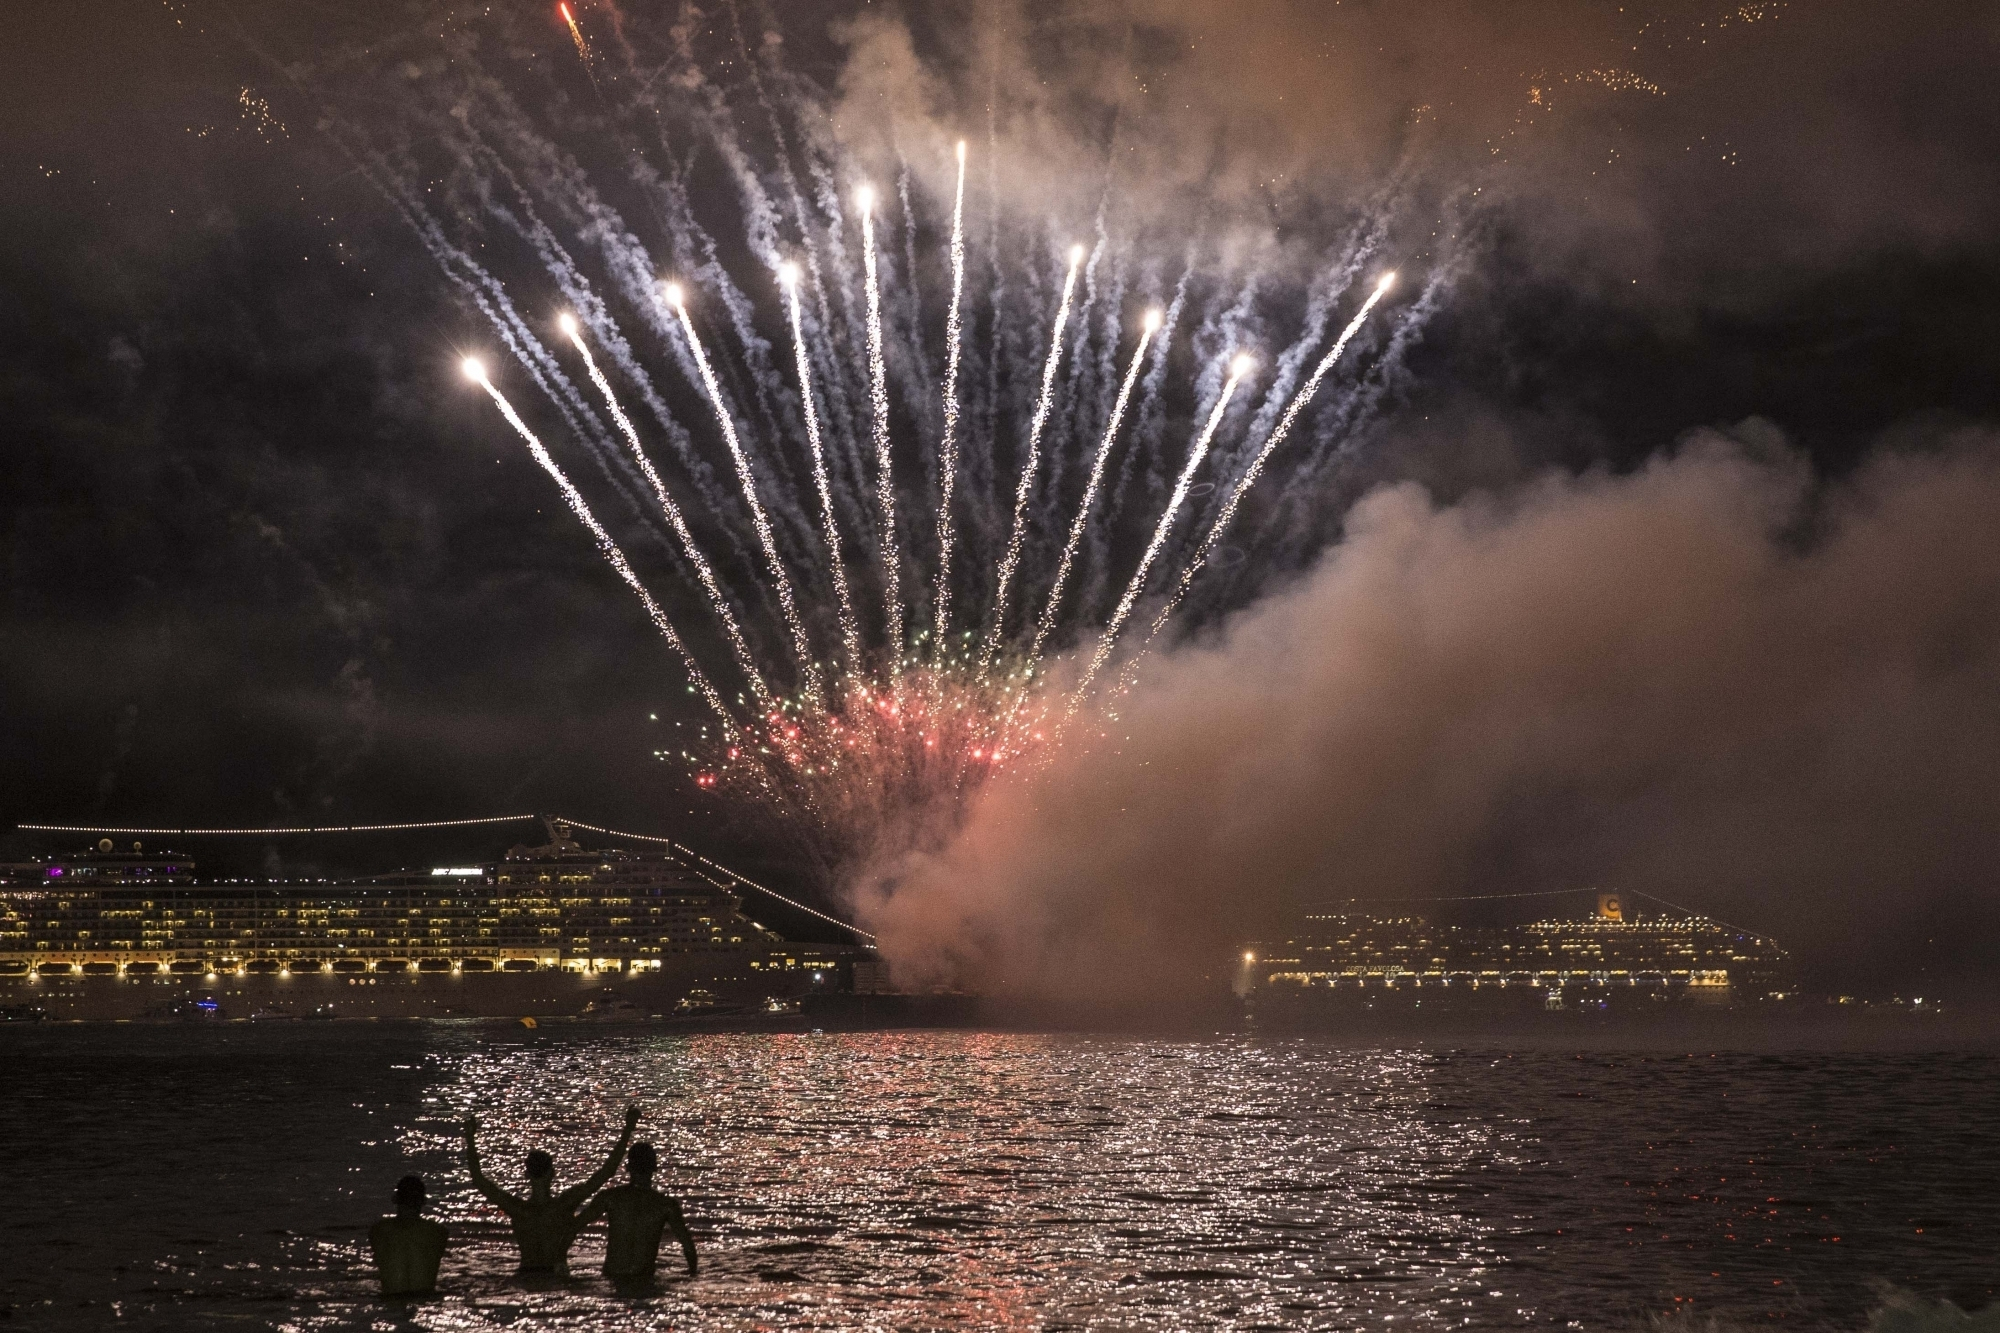 People watch fireworks celebrating the New Year in Rio De Janeiro, Brazil. (Image Credit: Xinhua/IANS)